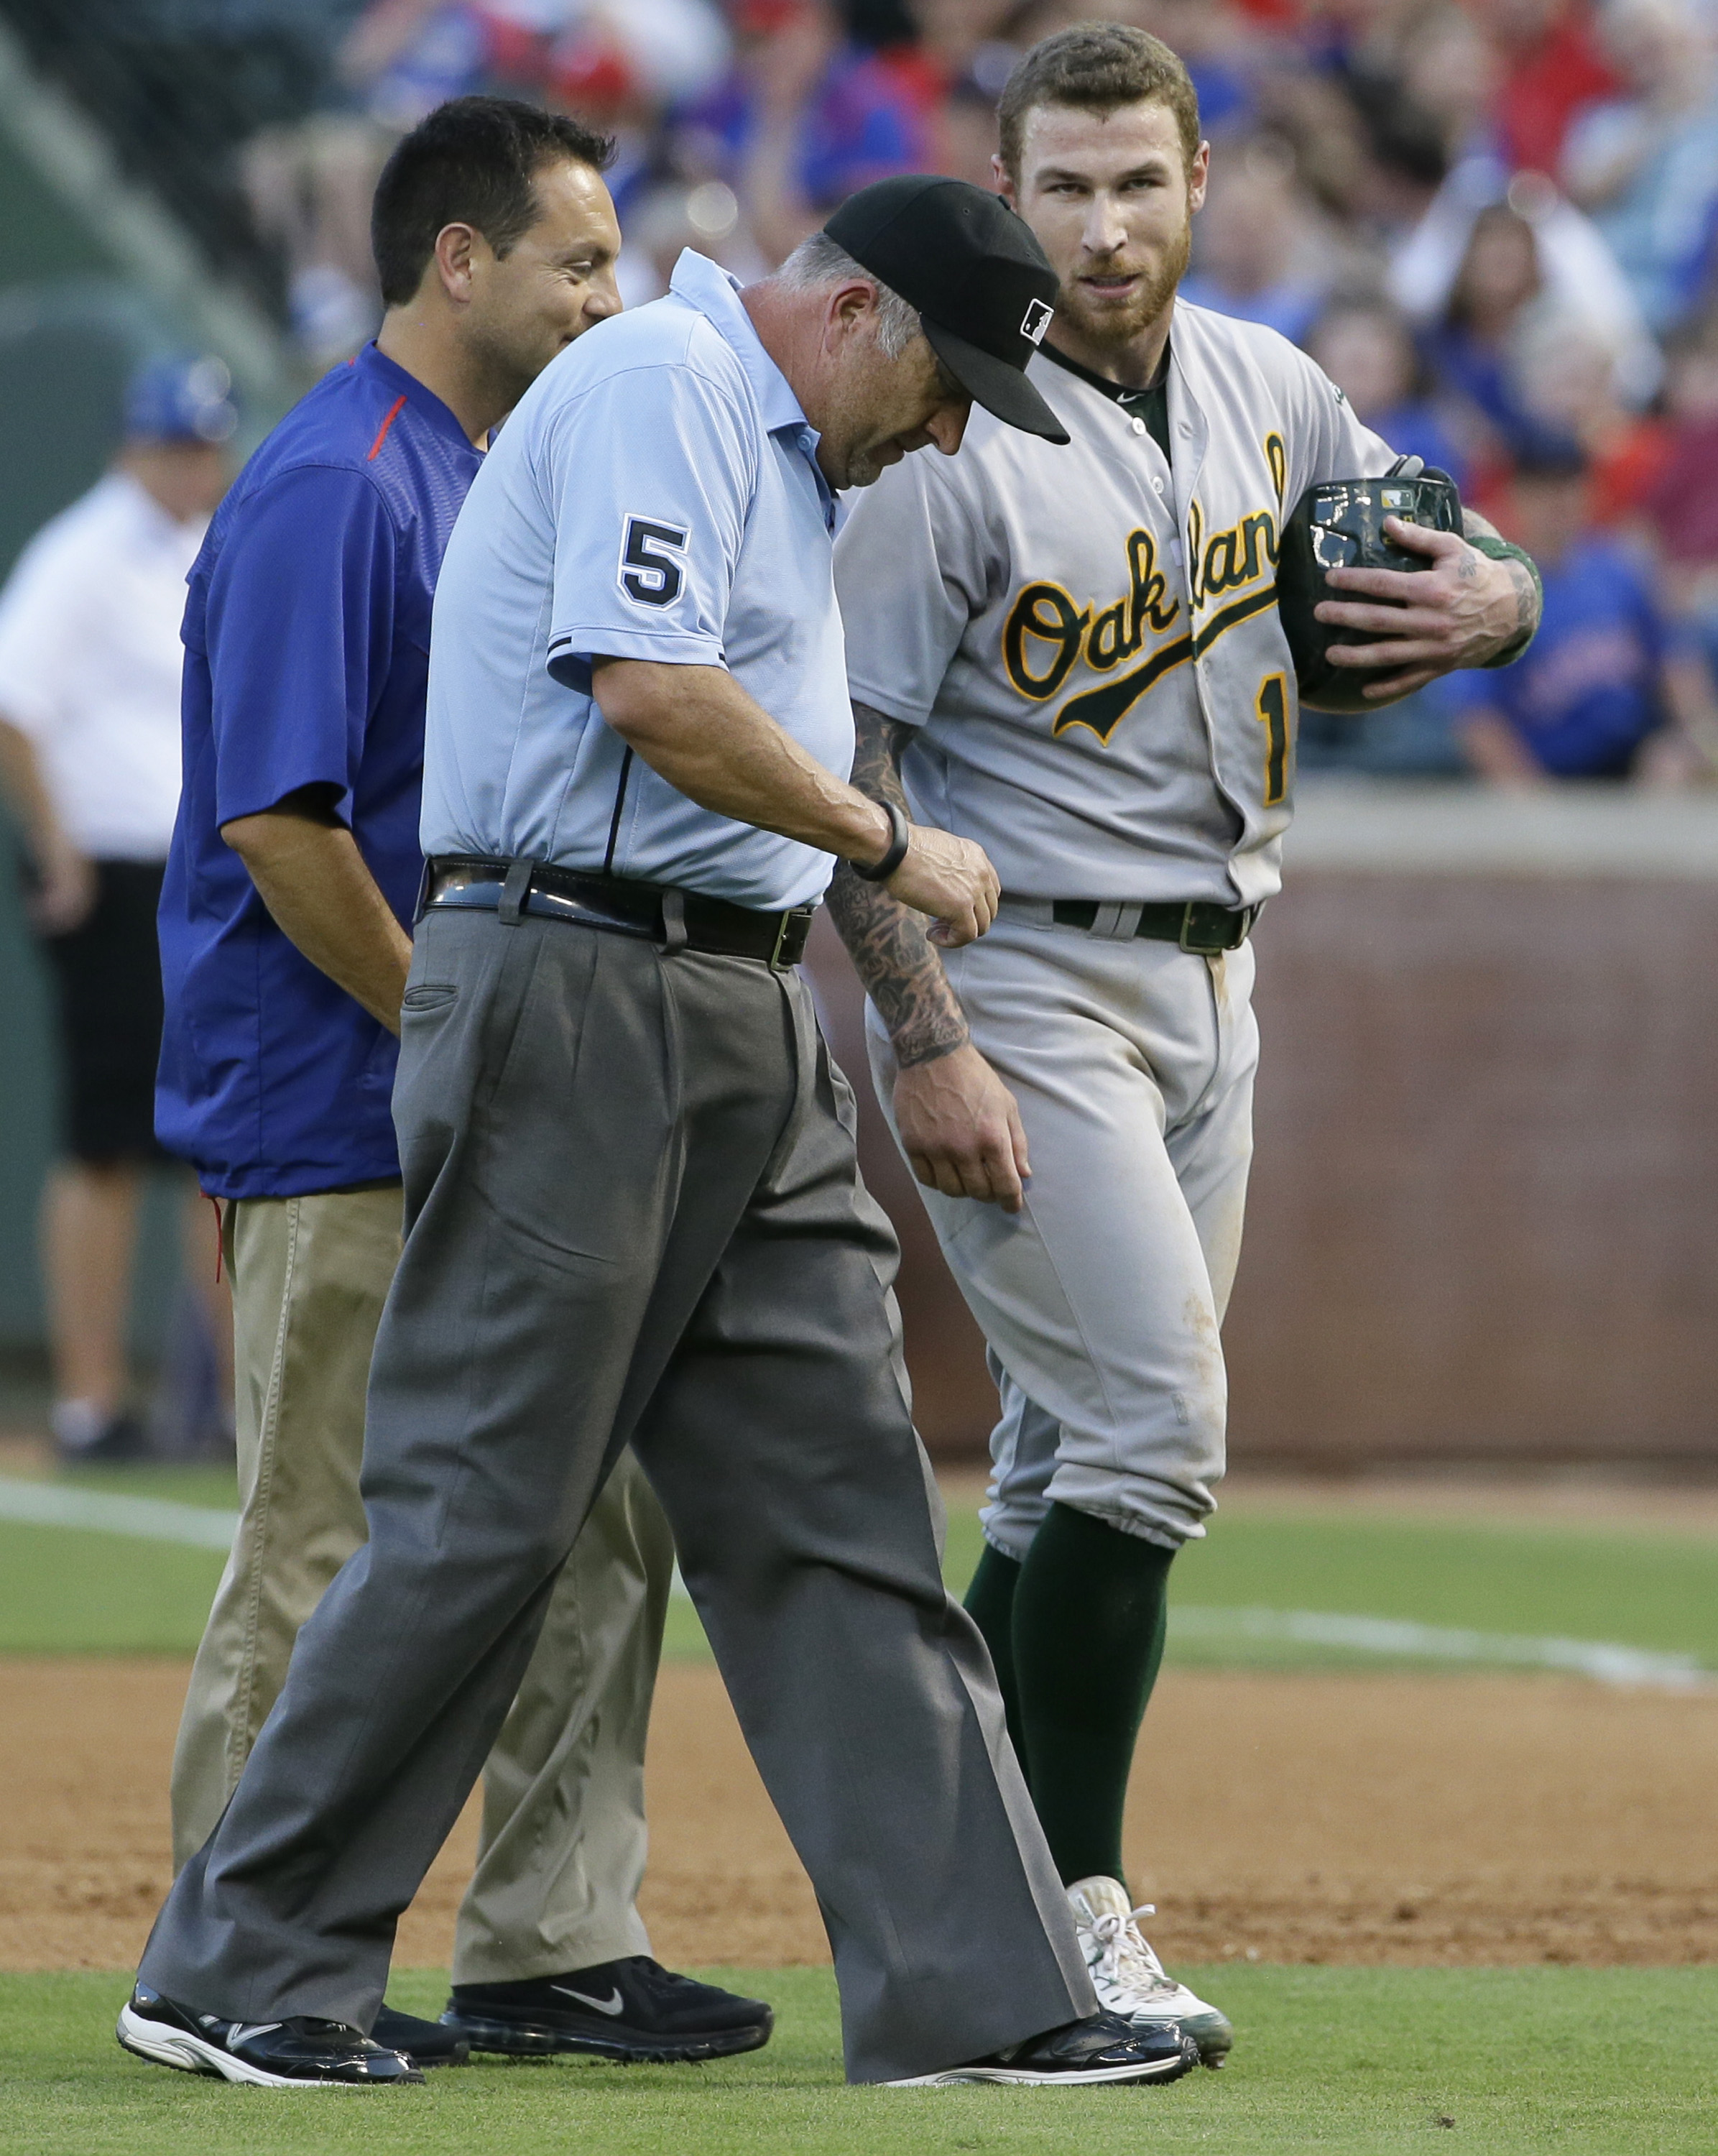 Umpire Dale Scott, front, leaves the game as  Oakland Athletics Brett Lawrie (15) checks on him after Scott was struck by a line drive during the fourth inning of a baseball game between the Oakland Athletics and Texas Rangers in Arlington, Texas, Wednesd